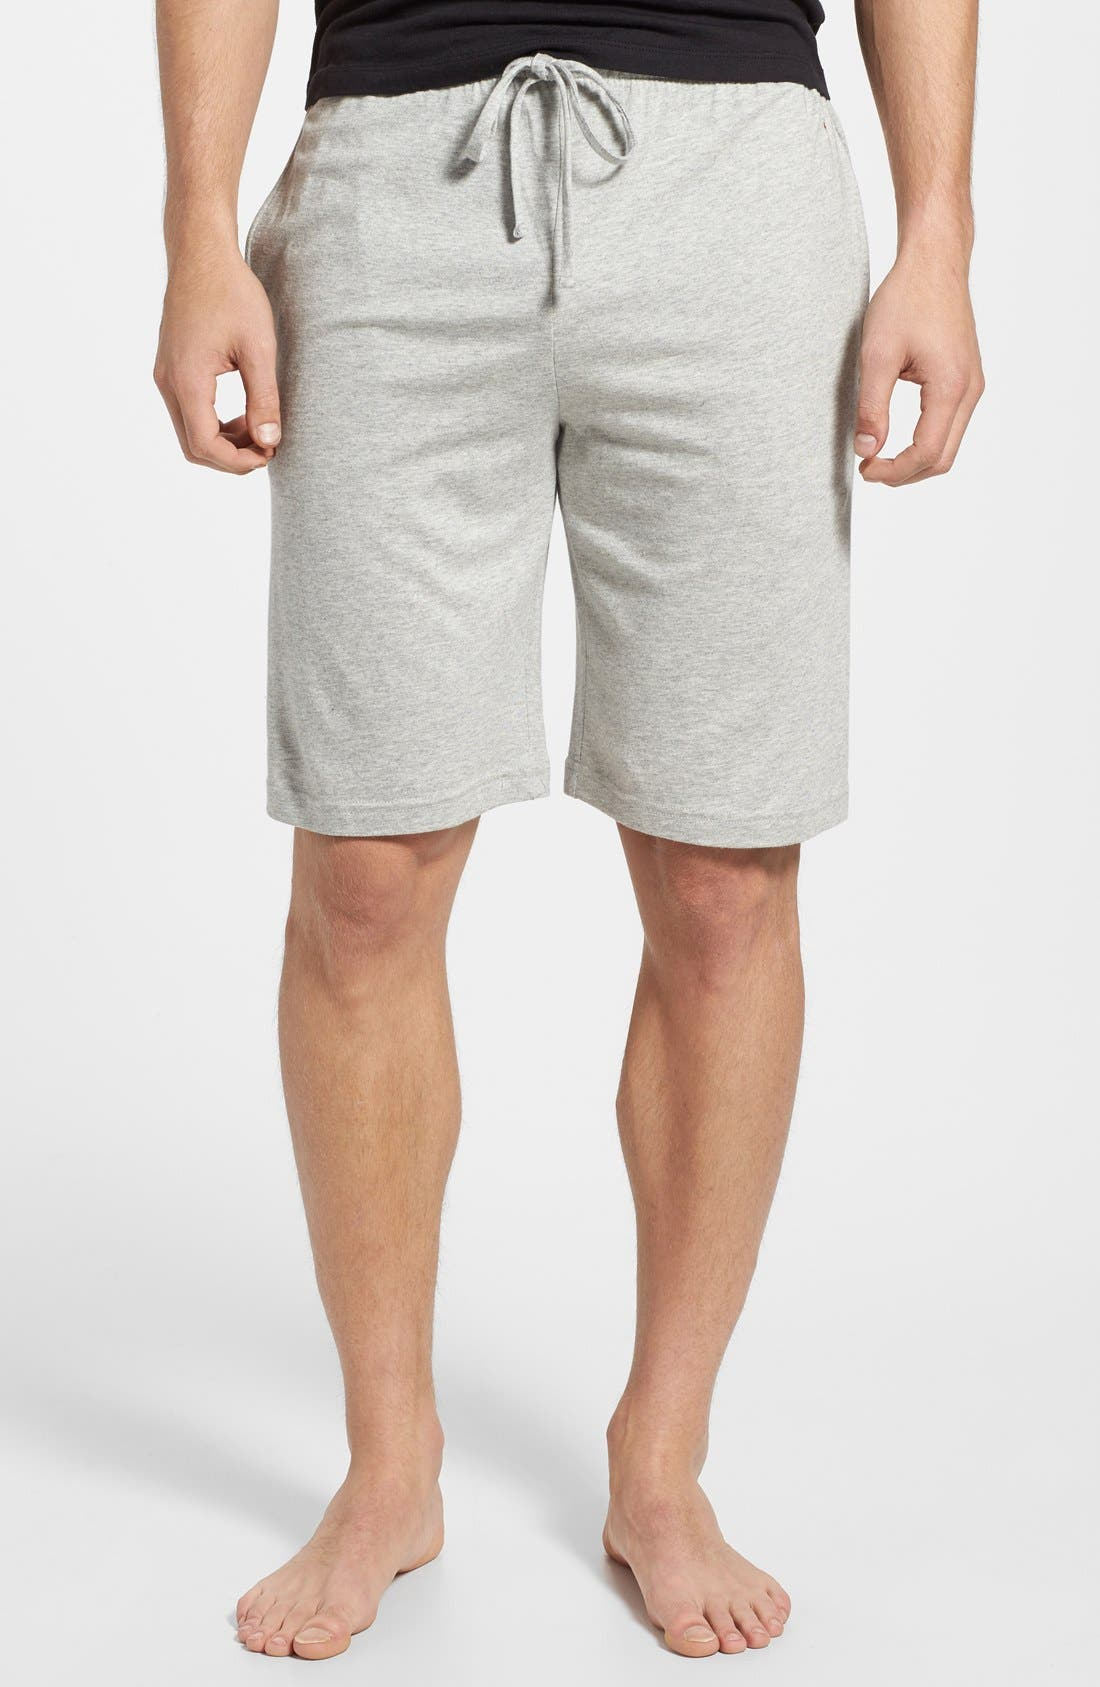 POLO RALPH LAUREN Sleep Shorts, Main, color, ANDOVER HEATHER